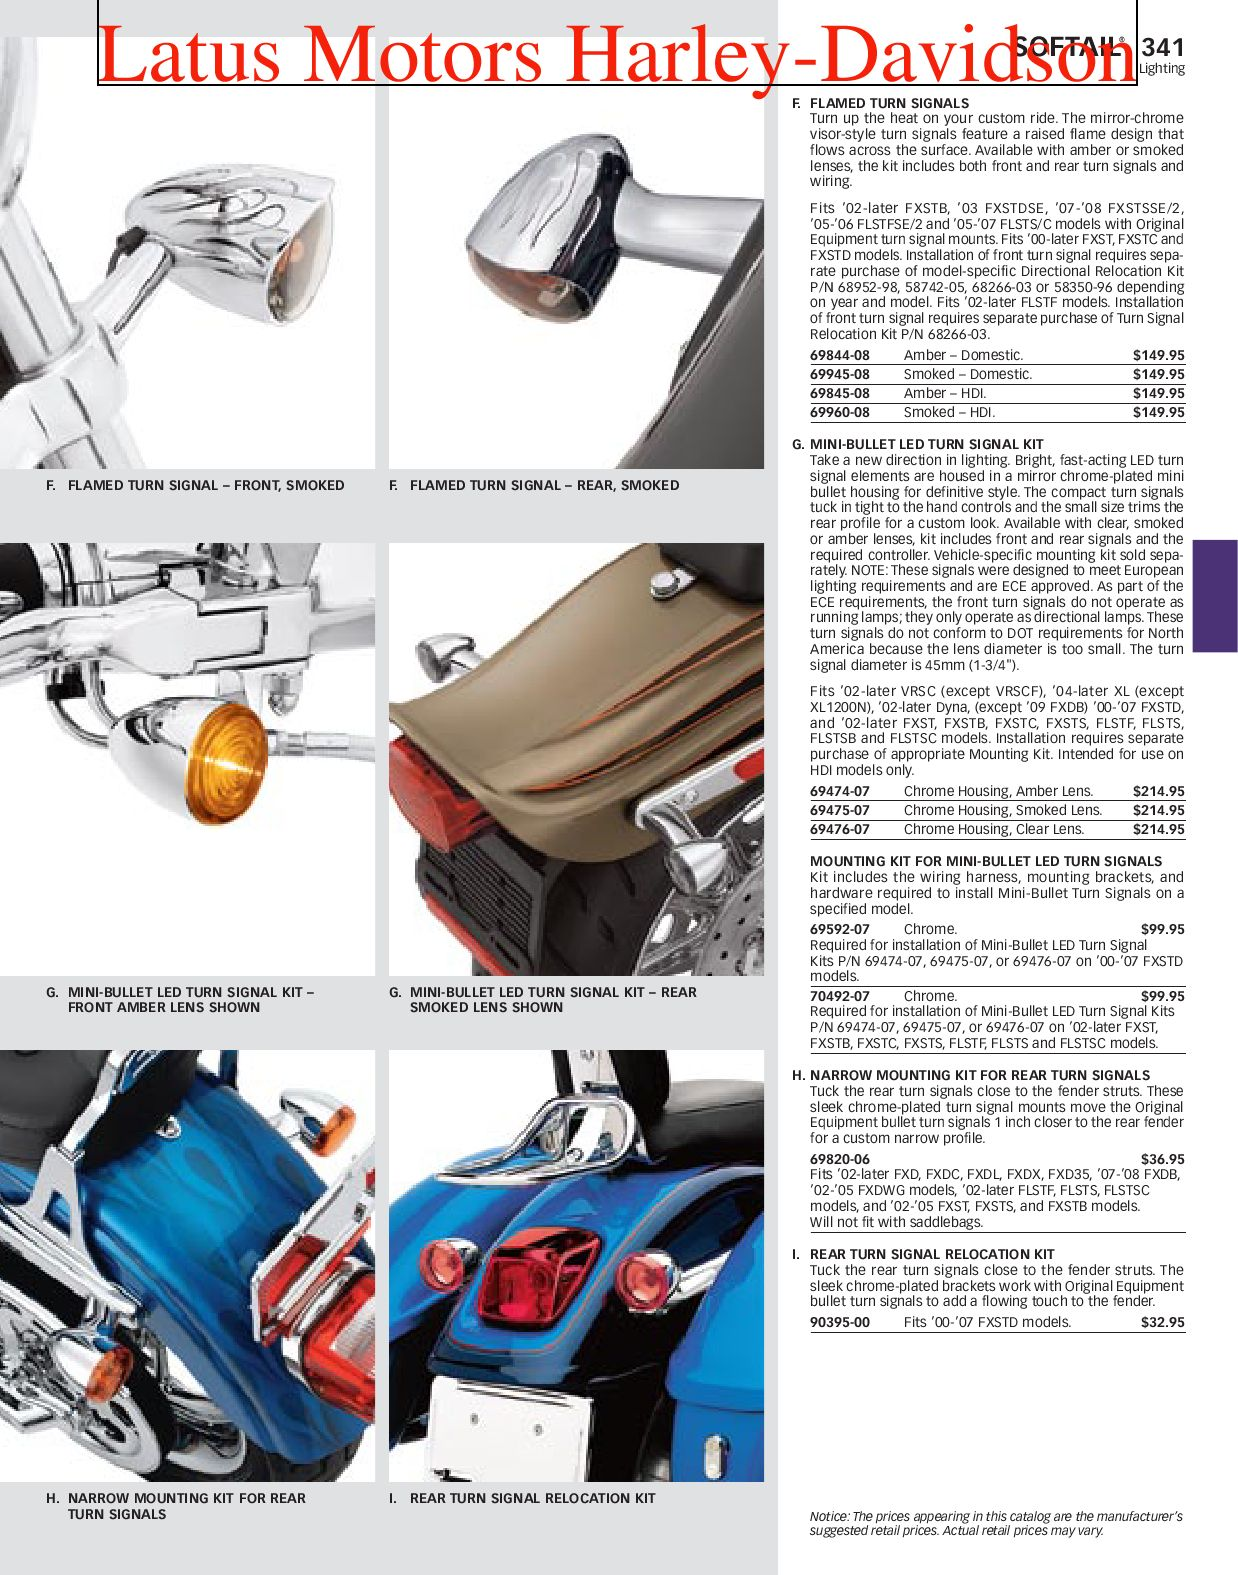 Part 1 Harley-Davidson Parts and Accessories Catalog by Harley